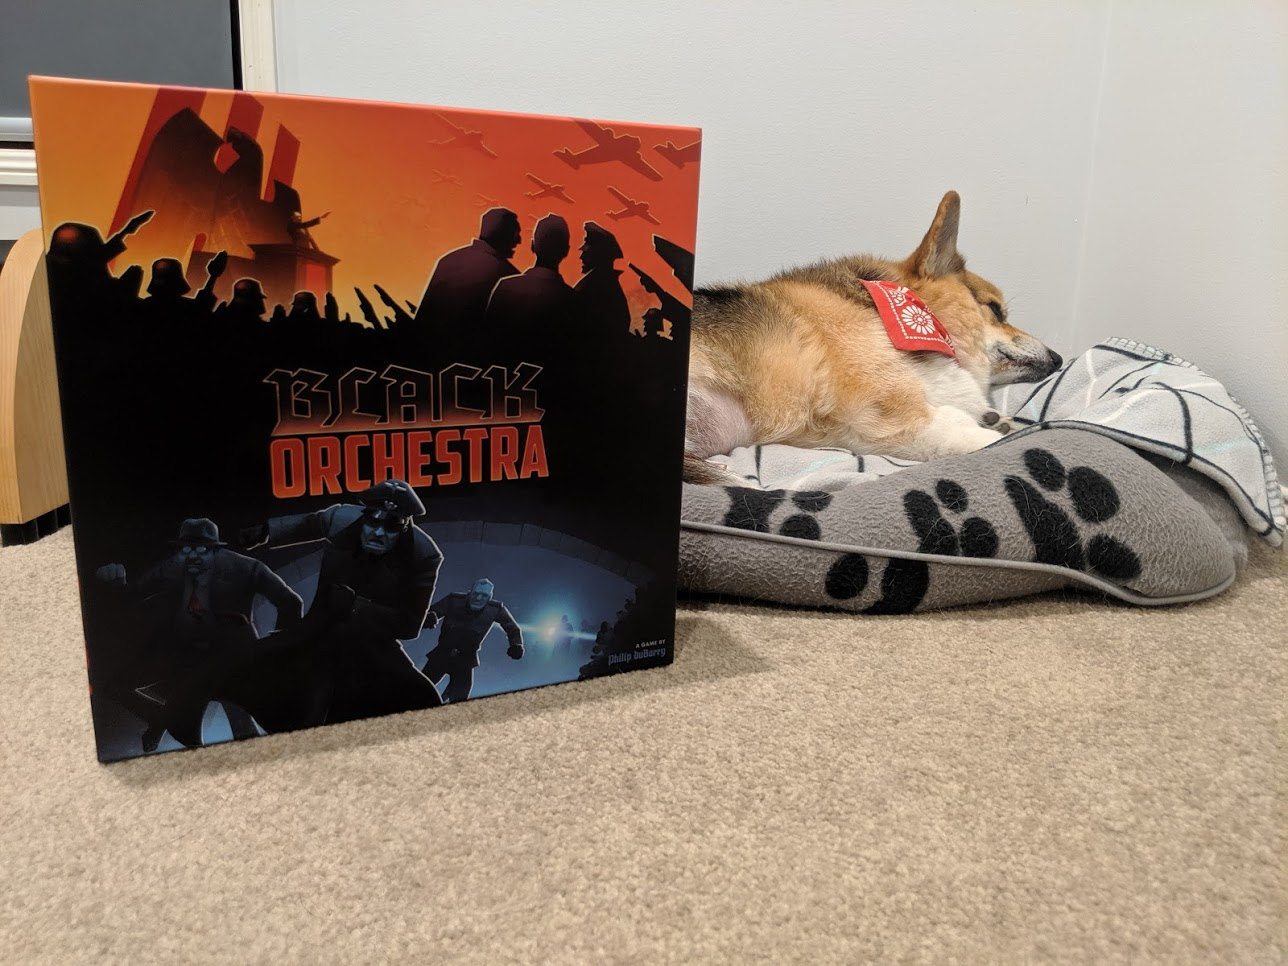 Black Orchestra box next to a sleeping corgi. It's pretty cute.